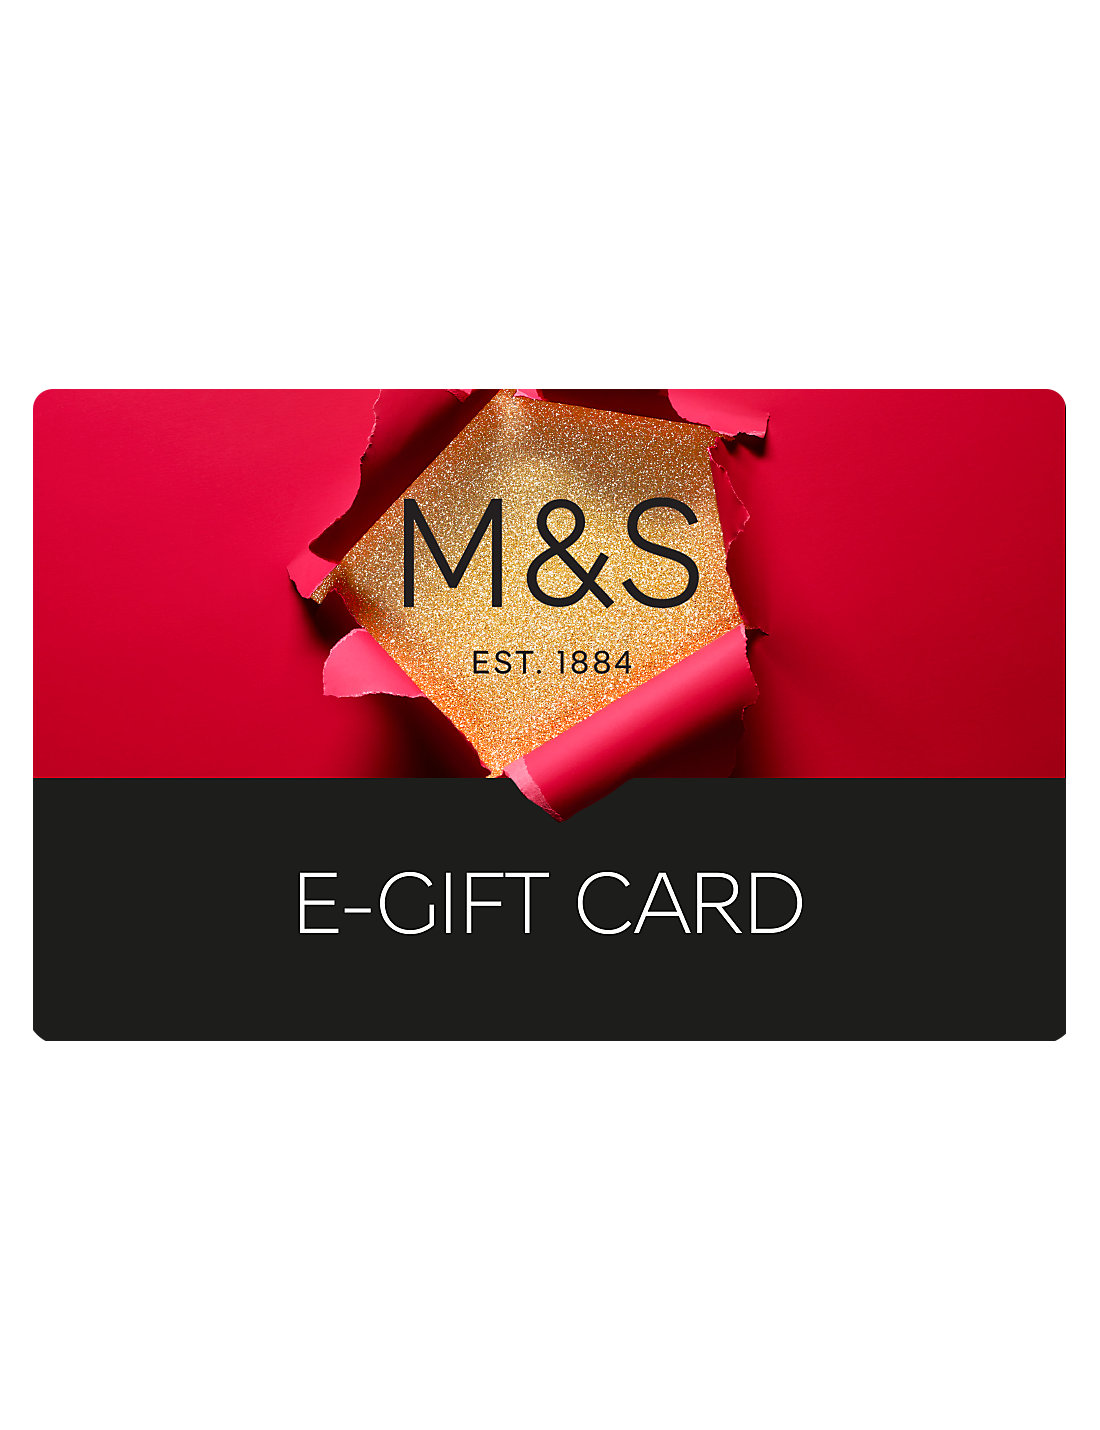 E gift cards buy digital gift card online ms quick look christmas unwrapped e gift card magicingreecefo Image collections